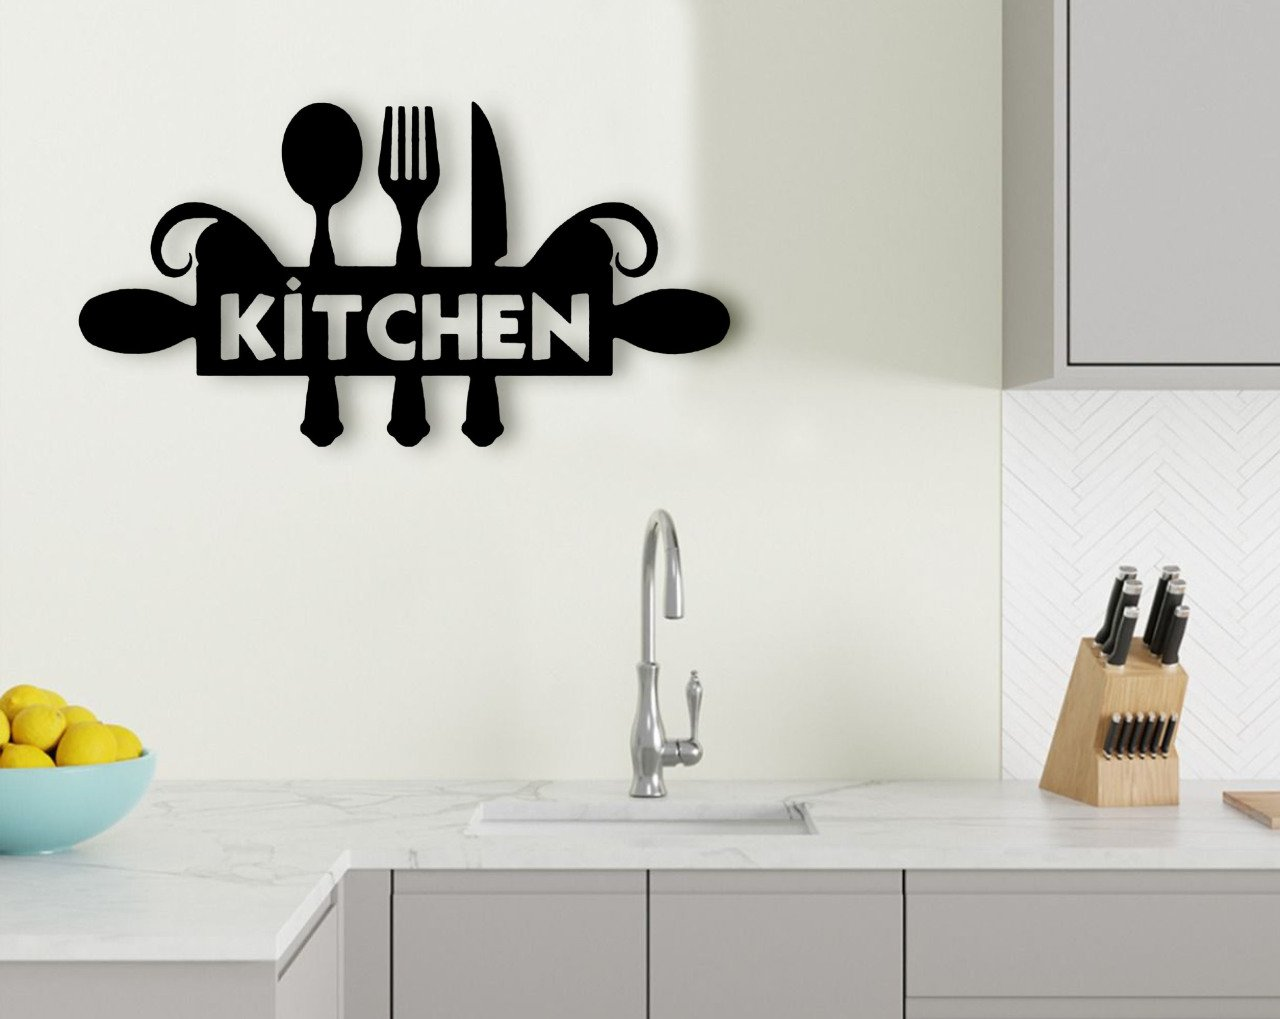 BK Home Kitchen Wood Wall Decoration Modern Convenient Reliable Decoration Gift Quality Design Simple Cool Black Color